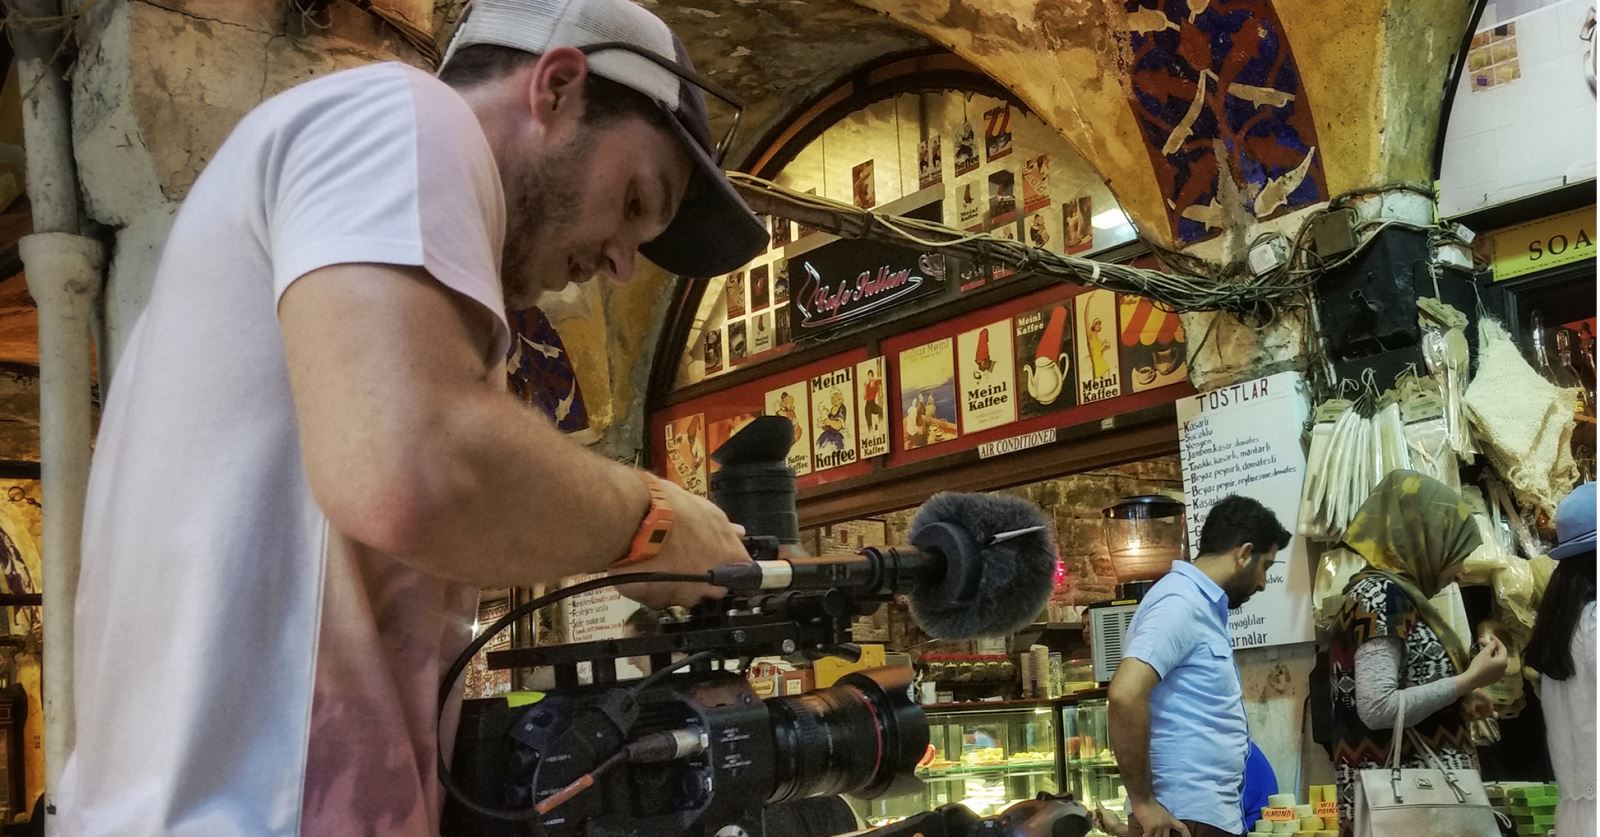 Welcome to new GTC member Niall Newport - seen here filming on a recent shoot in Turkey